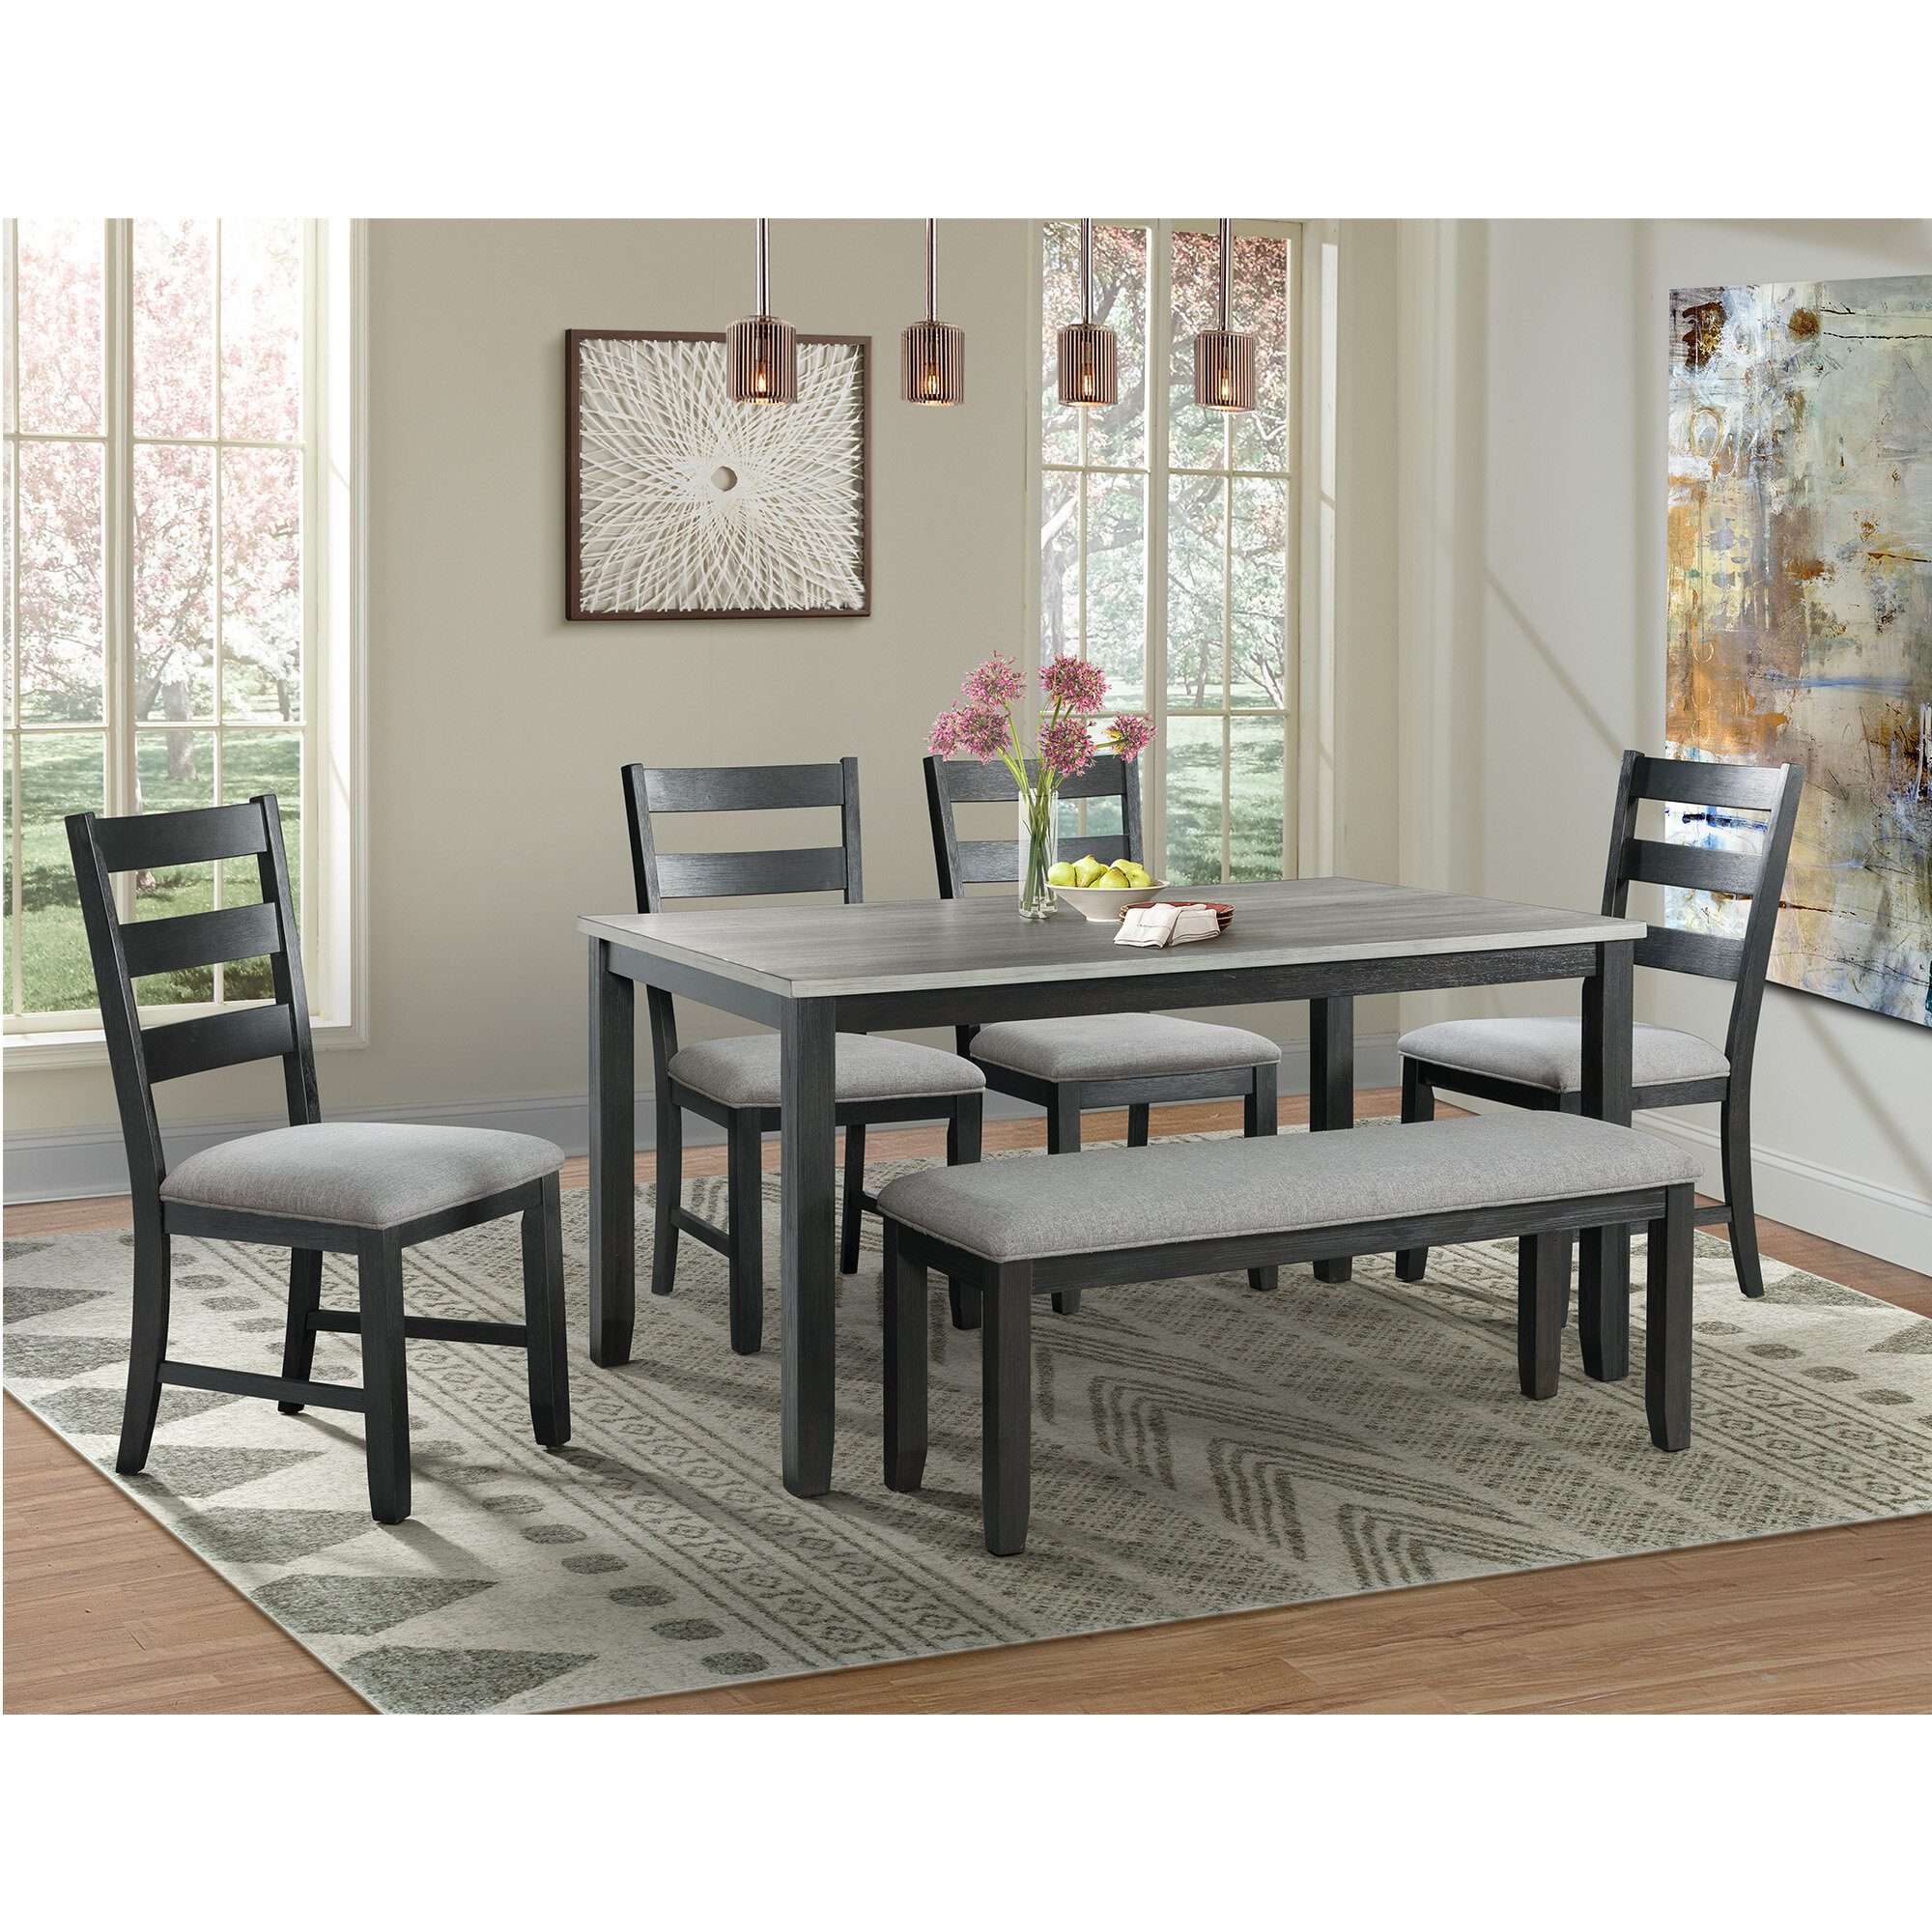 Kitchen Dining Room Sets Up To 55 Off Through 12 26 Wayfair